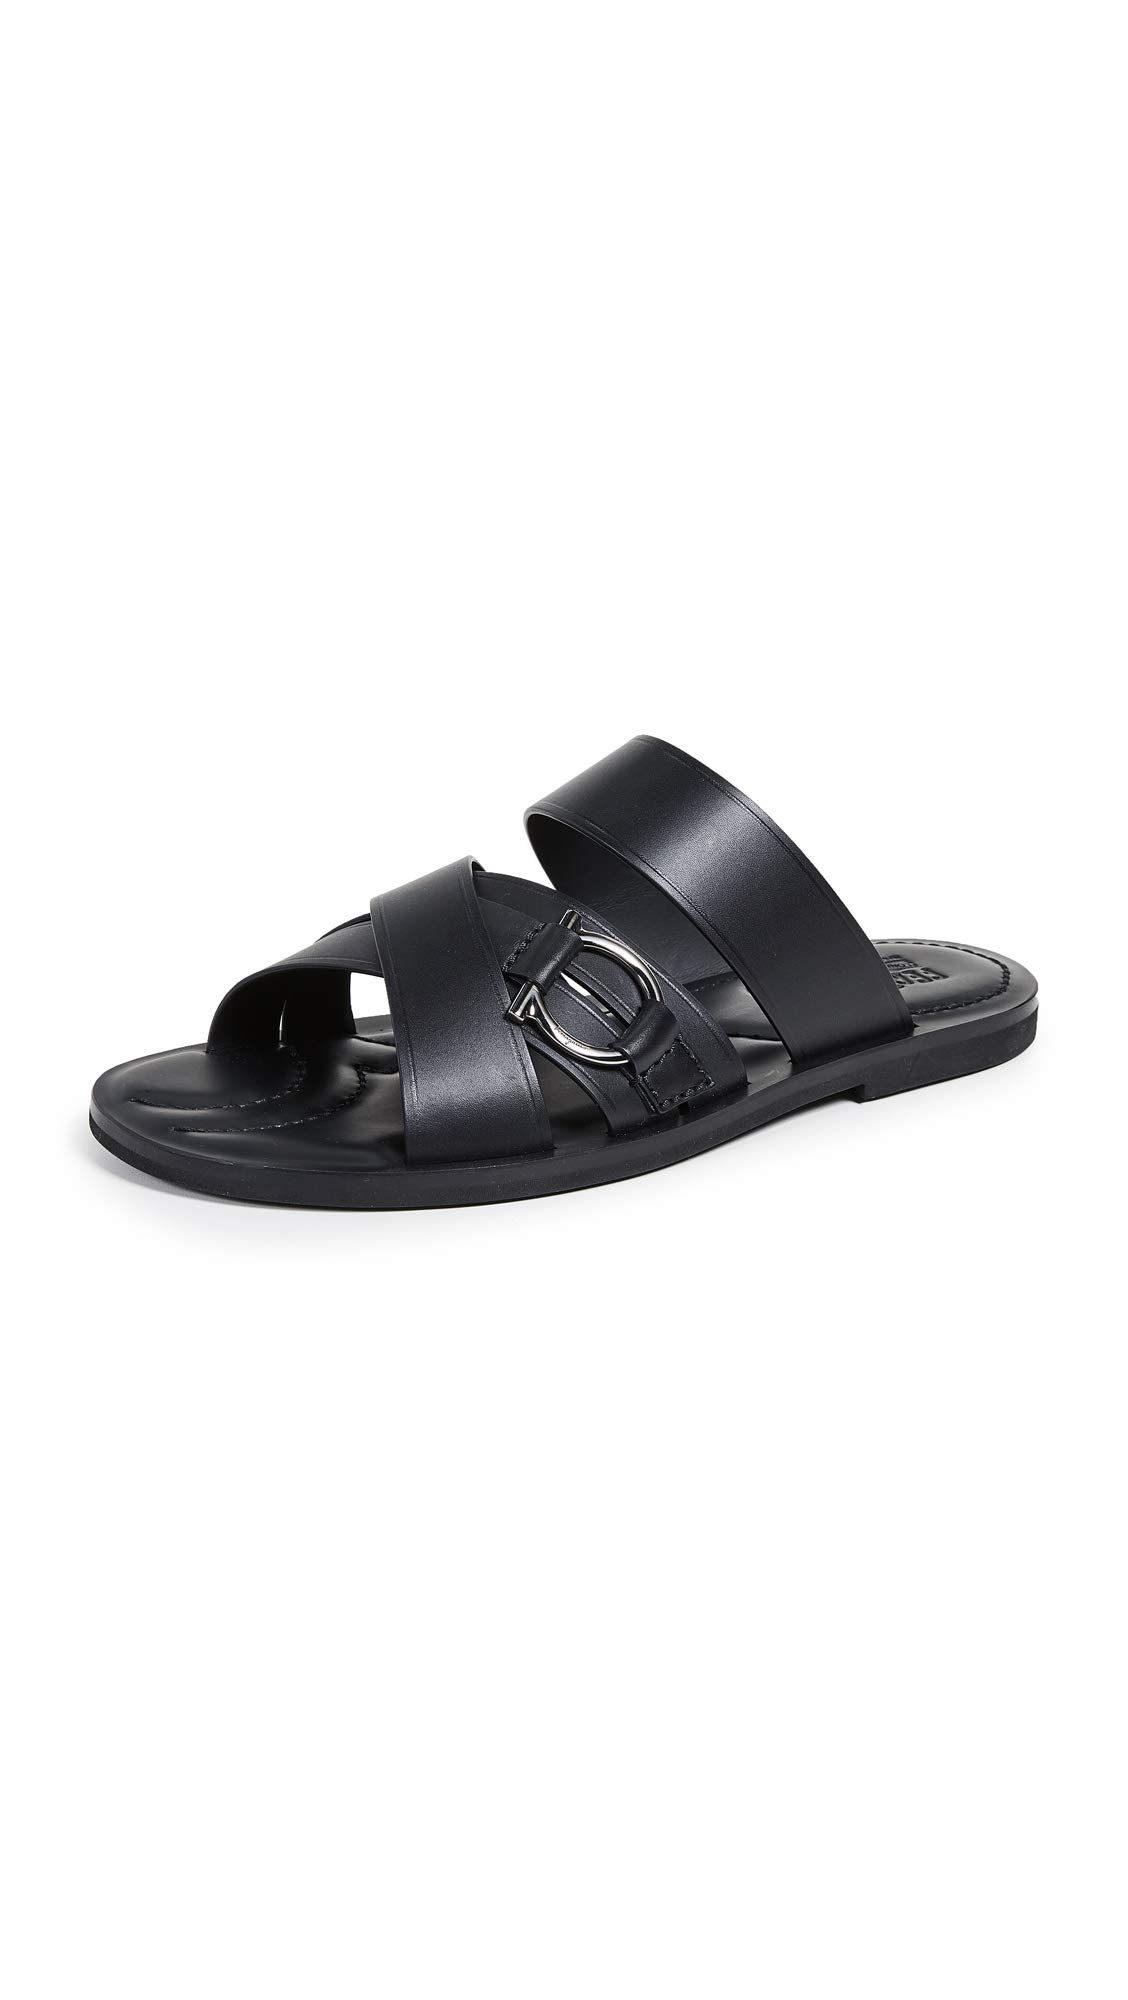 Salvatore Ferragamo Men's Atina Leather Sandals, Black, 8 M US